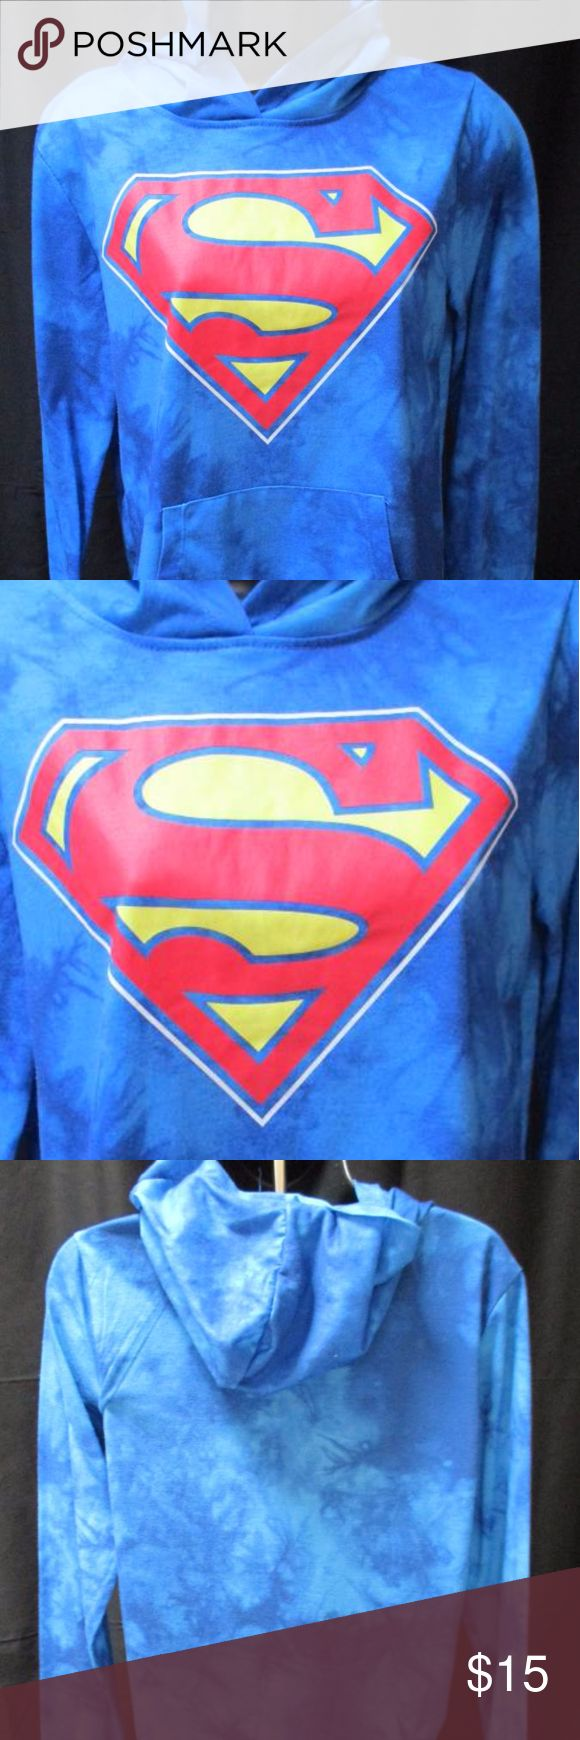 "SUPERMAN DC Comics Pullover Hoodie-Size:M-(7/9) This is a Junior Girls DC Comics Superman Pullover Hoodie. Blue with brush like strokes front to back. Very Good Pre-Owned Condition, Measurements:Shoulder to Shoulder: 16"", Armpit to Armpit: 18"", Shoulder to Hem: 24"", Sleeve Length: 25"" and Hood Length: 12/5"". Attached  hood, pullover style, 2 slip pockets in front, Superman emblem in front in colors of red/yellow/white, band on cuffs and waistband. Solid backside. Thank you for coming to…"